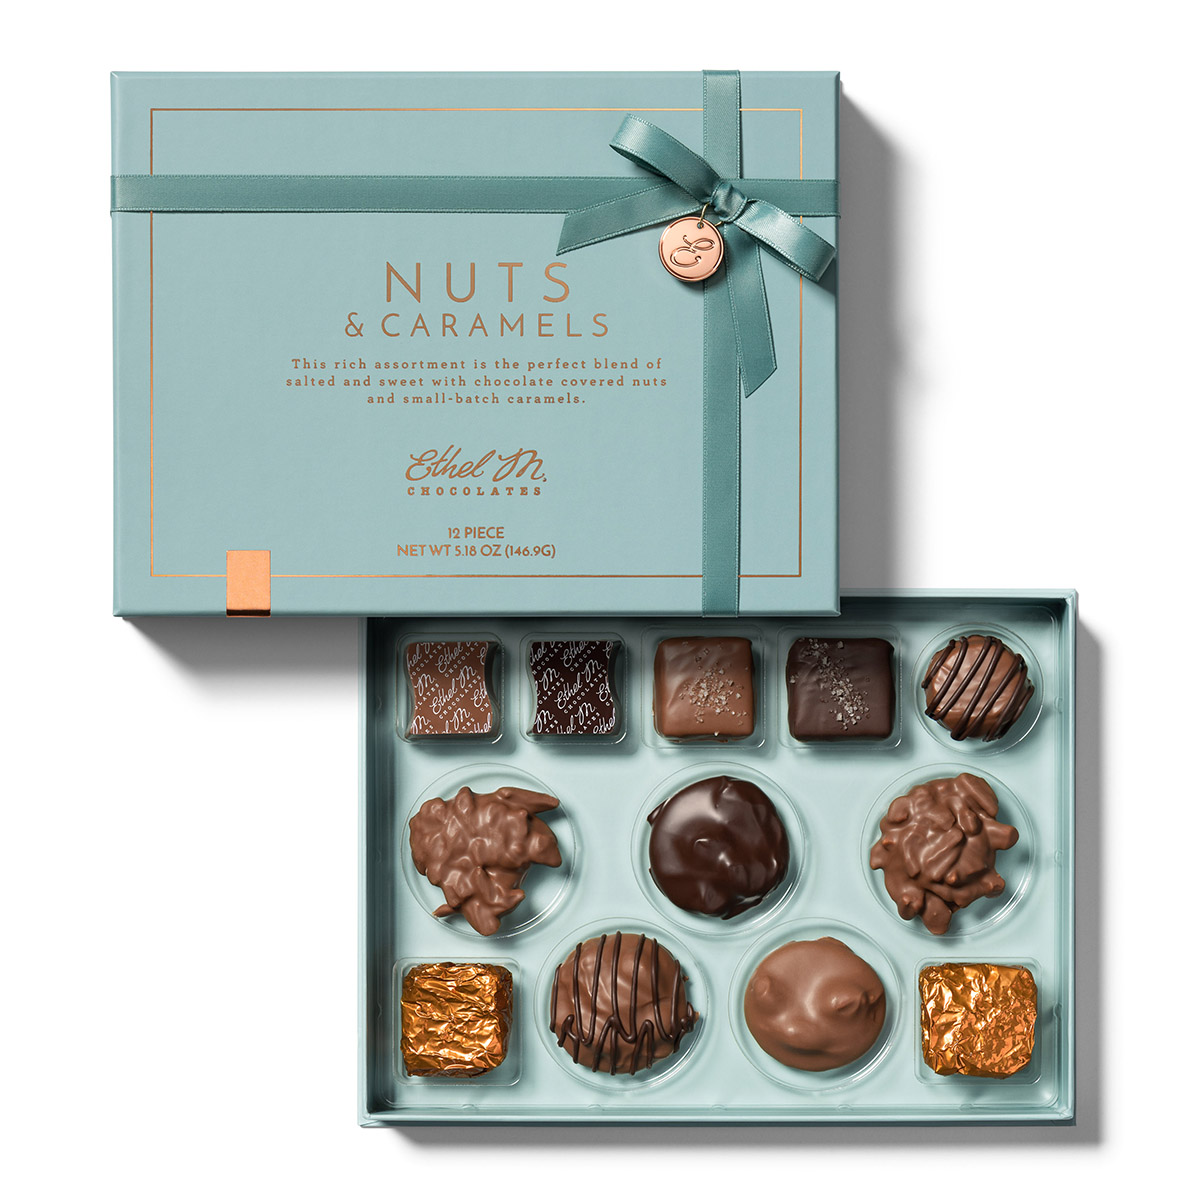 12pc nut and caramel